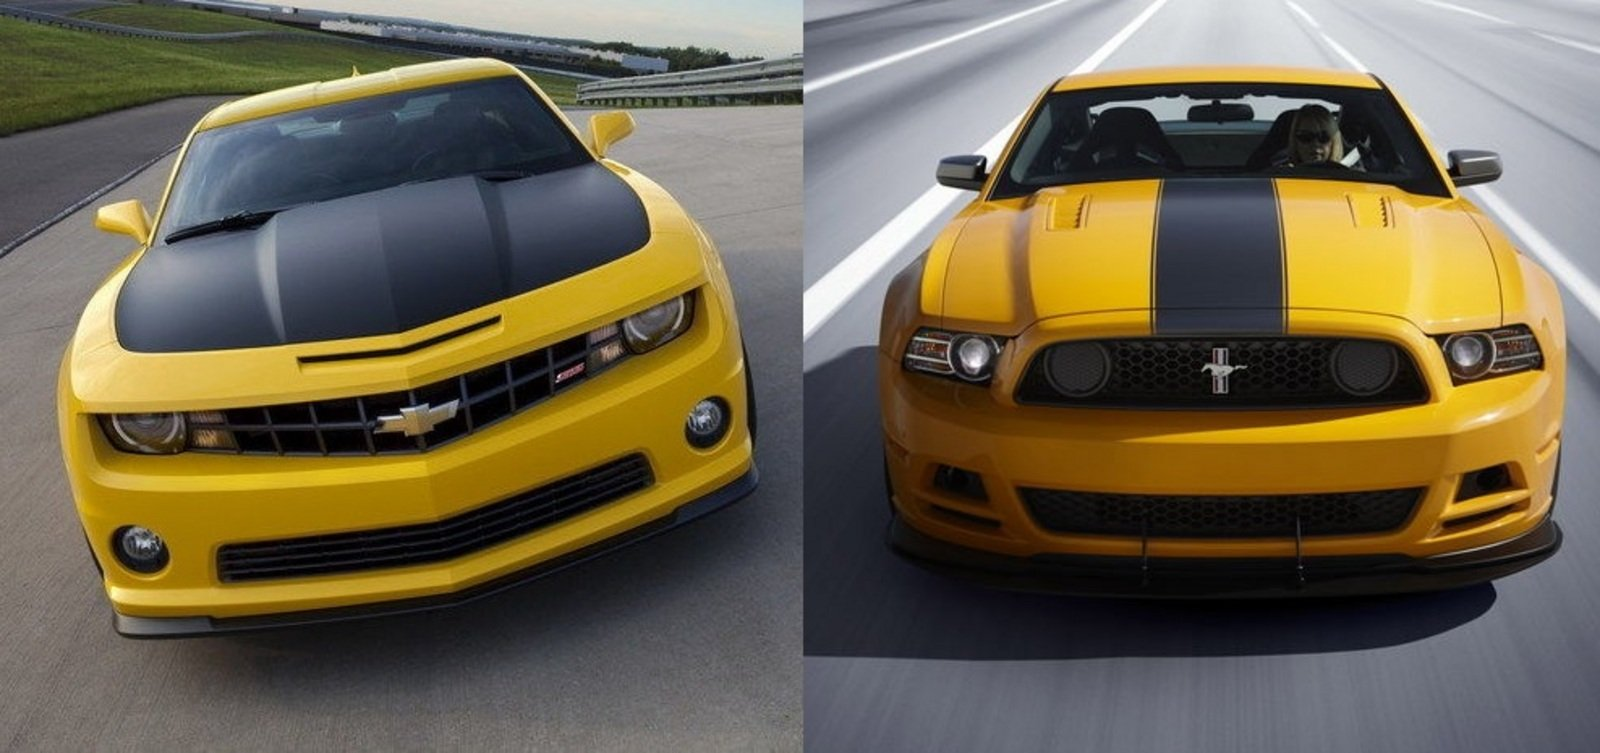 Comparison Chevrolet Camaro 1le Vs Ford Mustang Boss 302